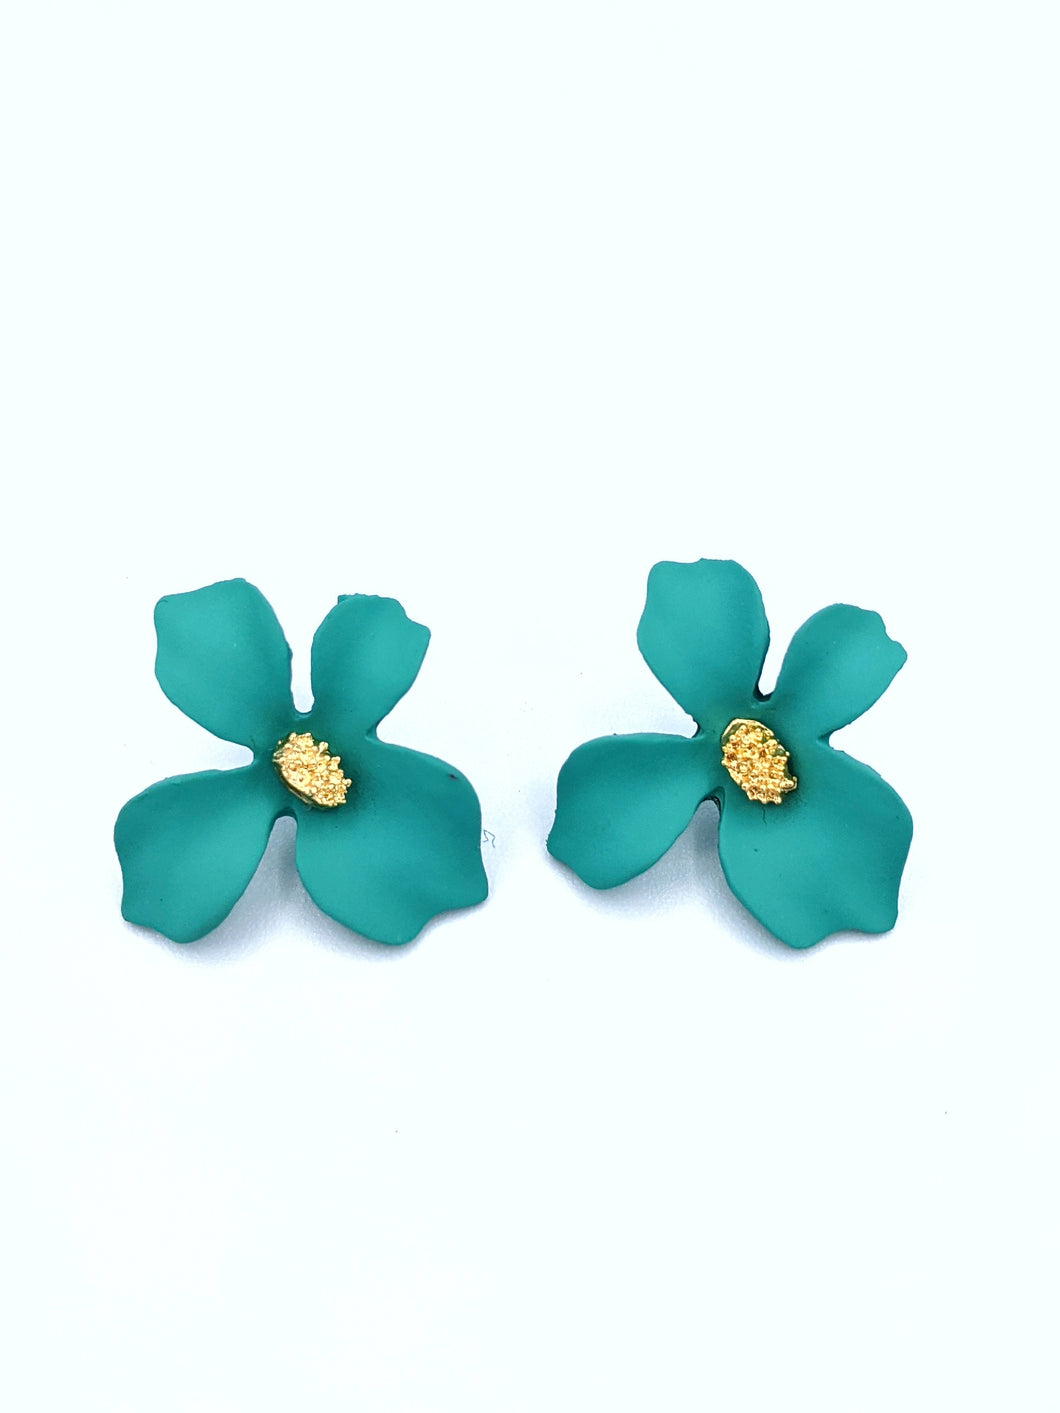 Golden Stamen Painted Flower Design Statement Earrings